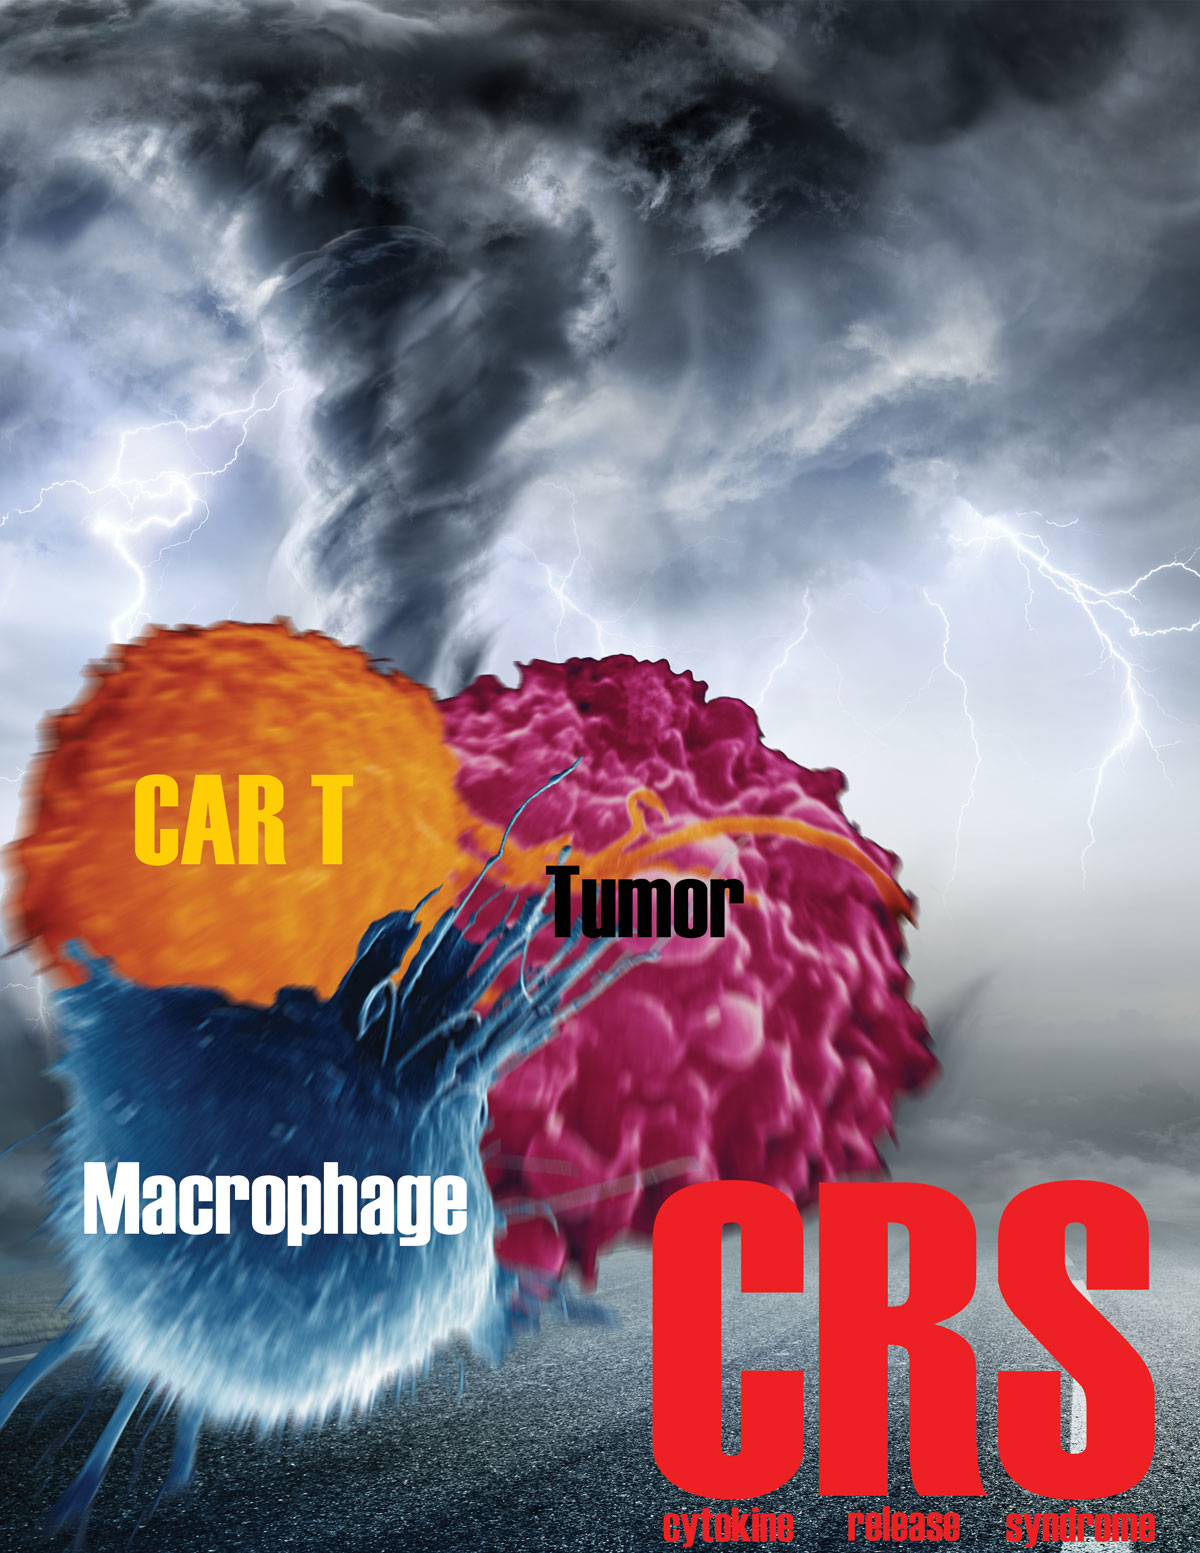 A drawing showing CAR T cells, macrophages, and tumor cells superimposed on a churning tornado-like storm.